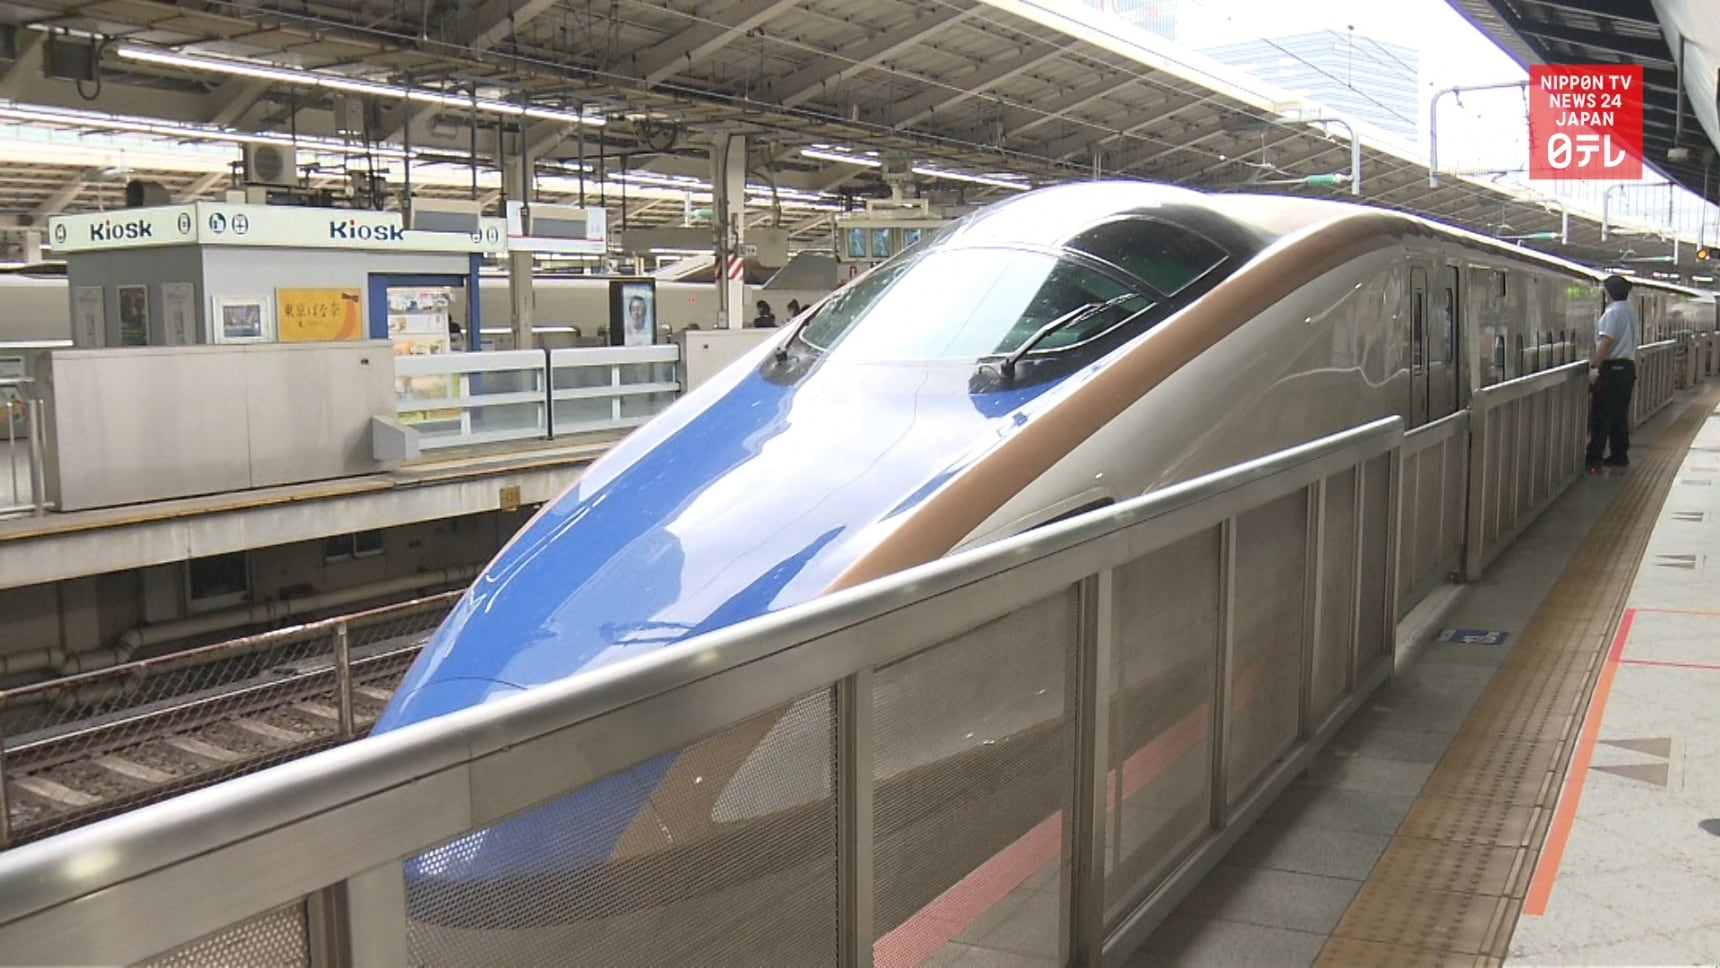 JR Halves Price of Bullet Train Tickets